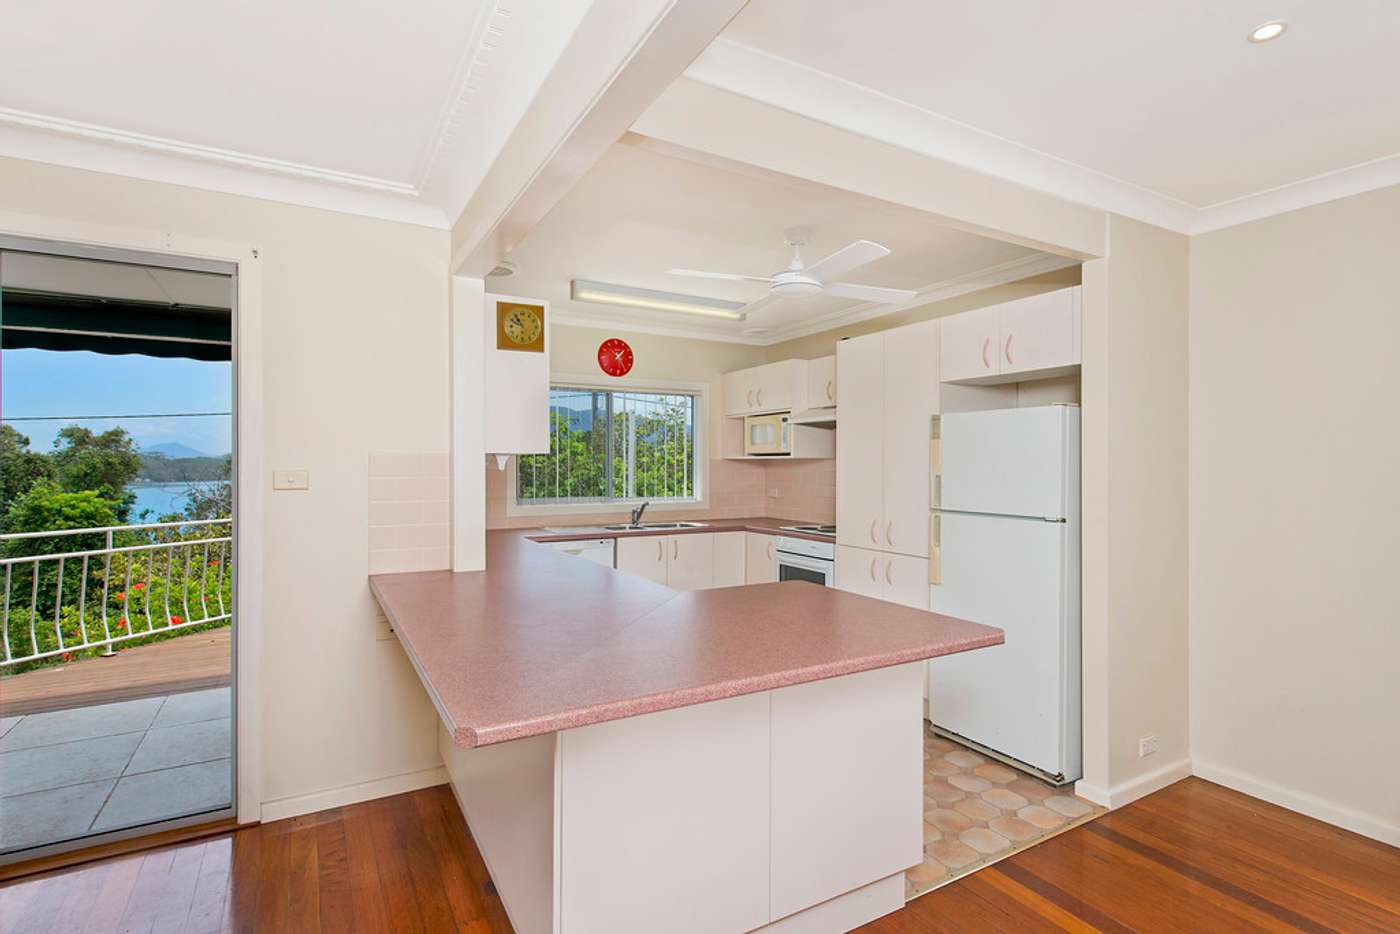 Sixth view of Homely house listing, 142 Camden Head Rd, Dunbogan NSW 2443